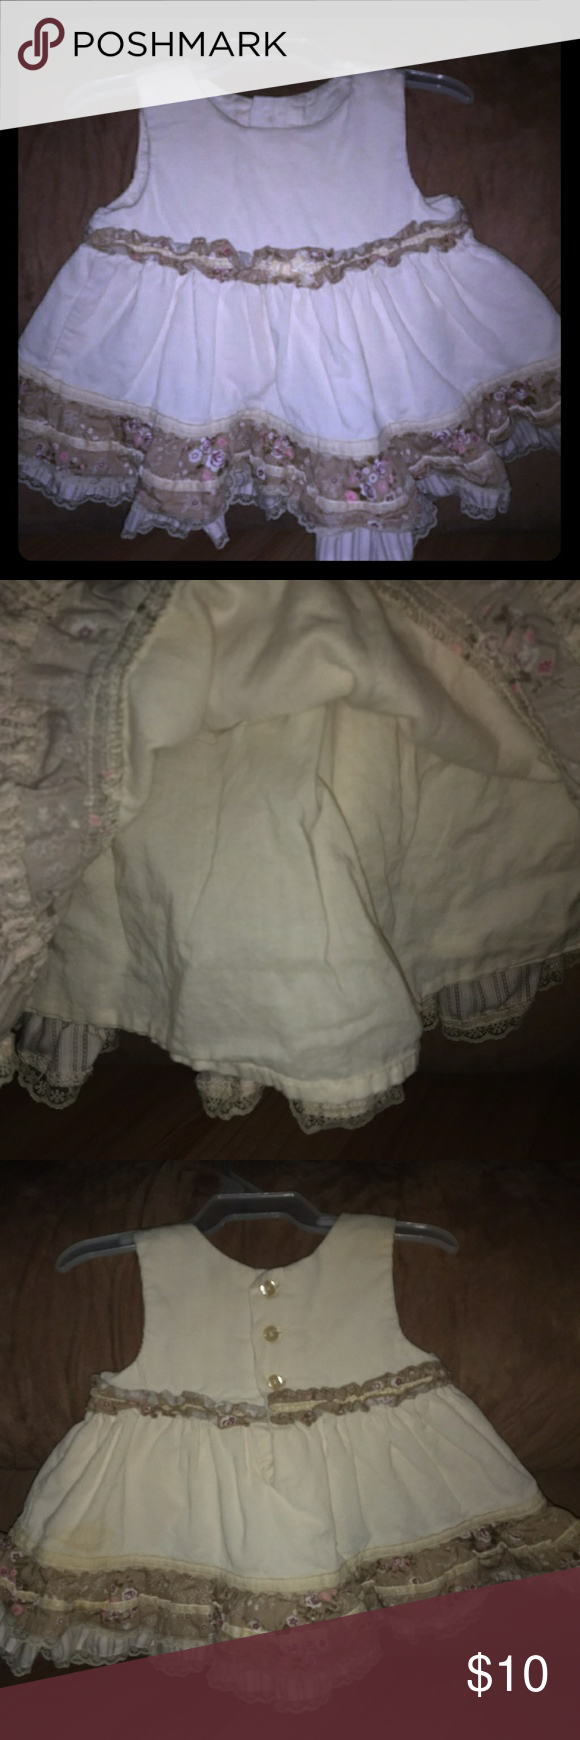 Little girl's dress Courderoy material. Awesome condition. Cream colored with brown. Has lace liner underneath. From smoke free home. Dresses